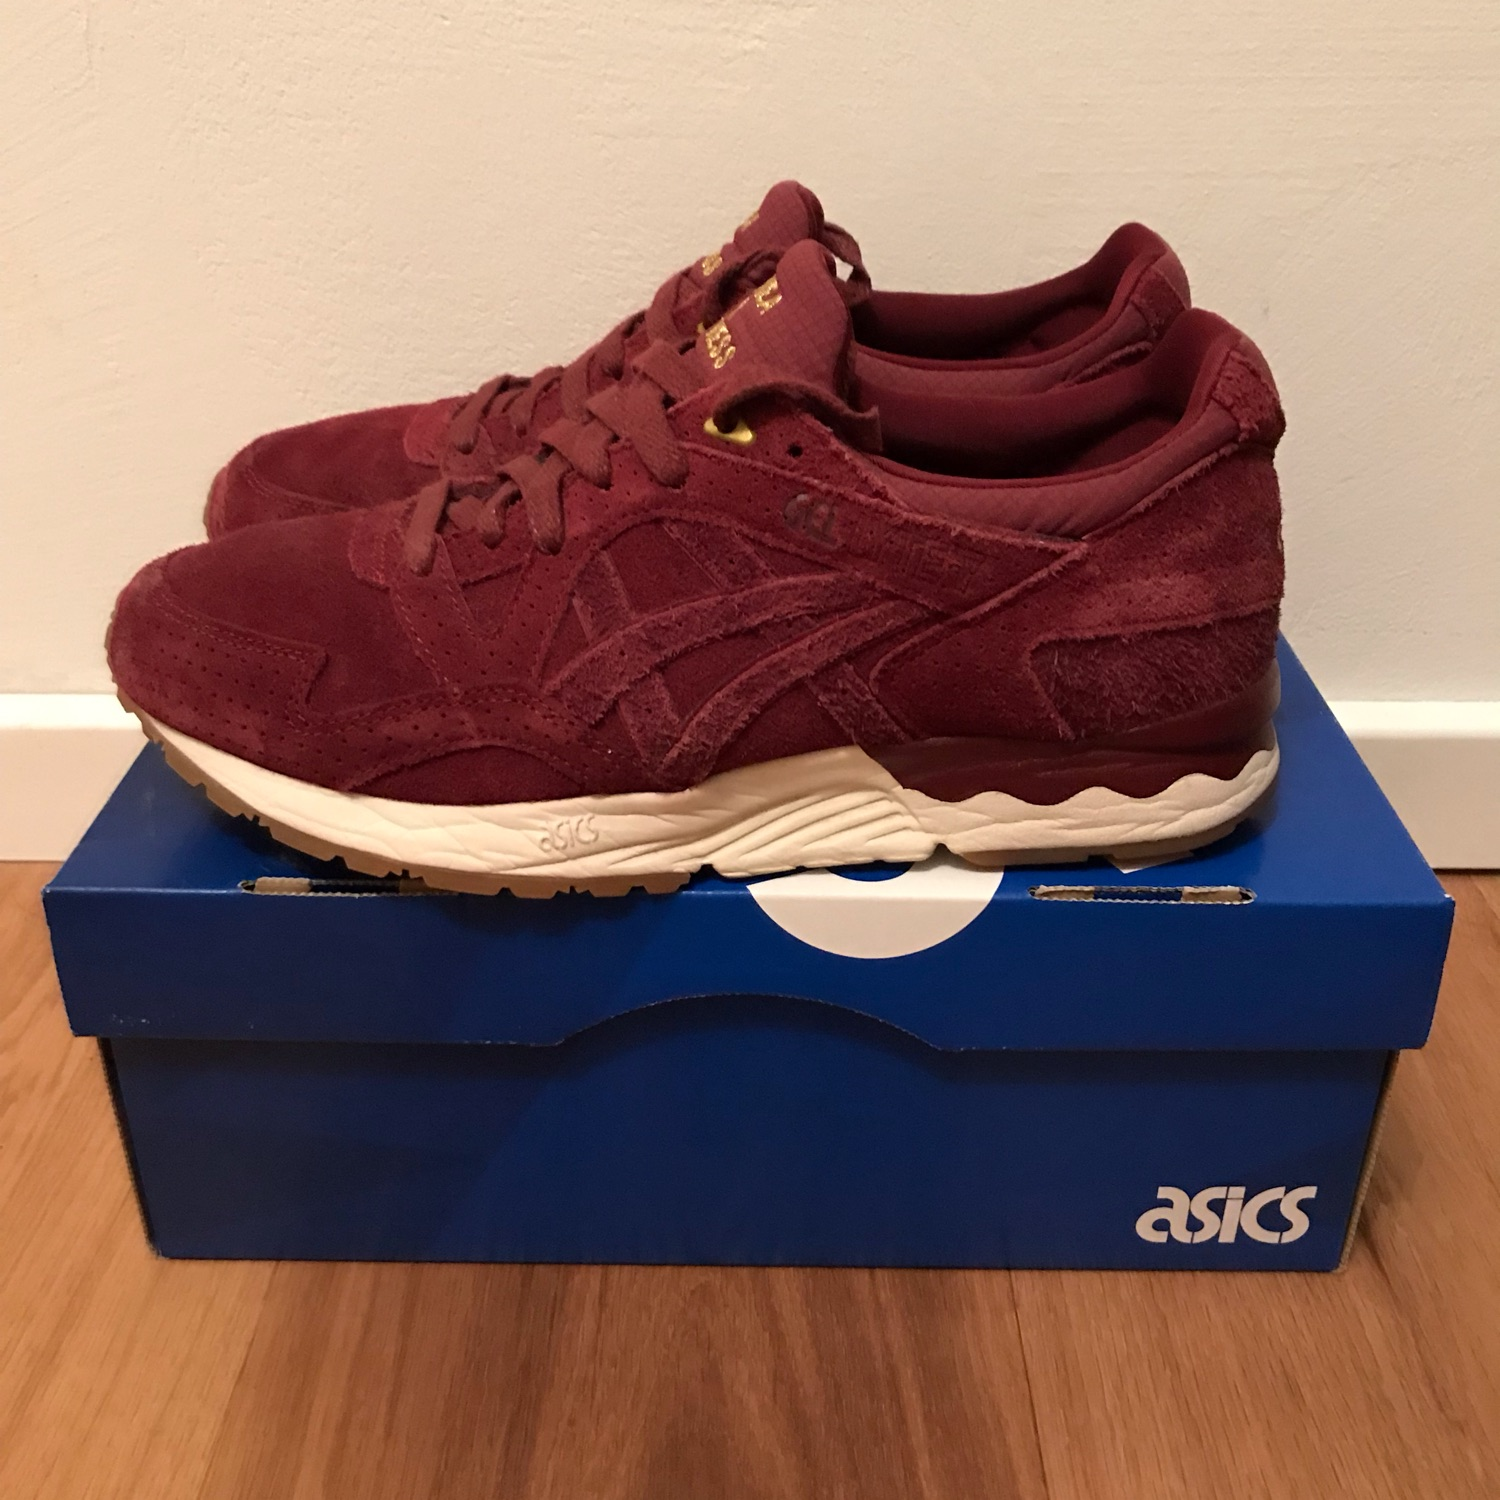 best website 3ad3d 10566 Asics Sneakerness